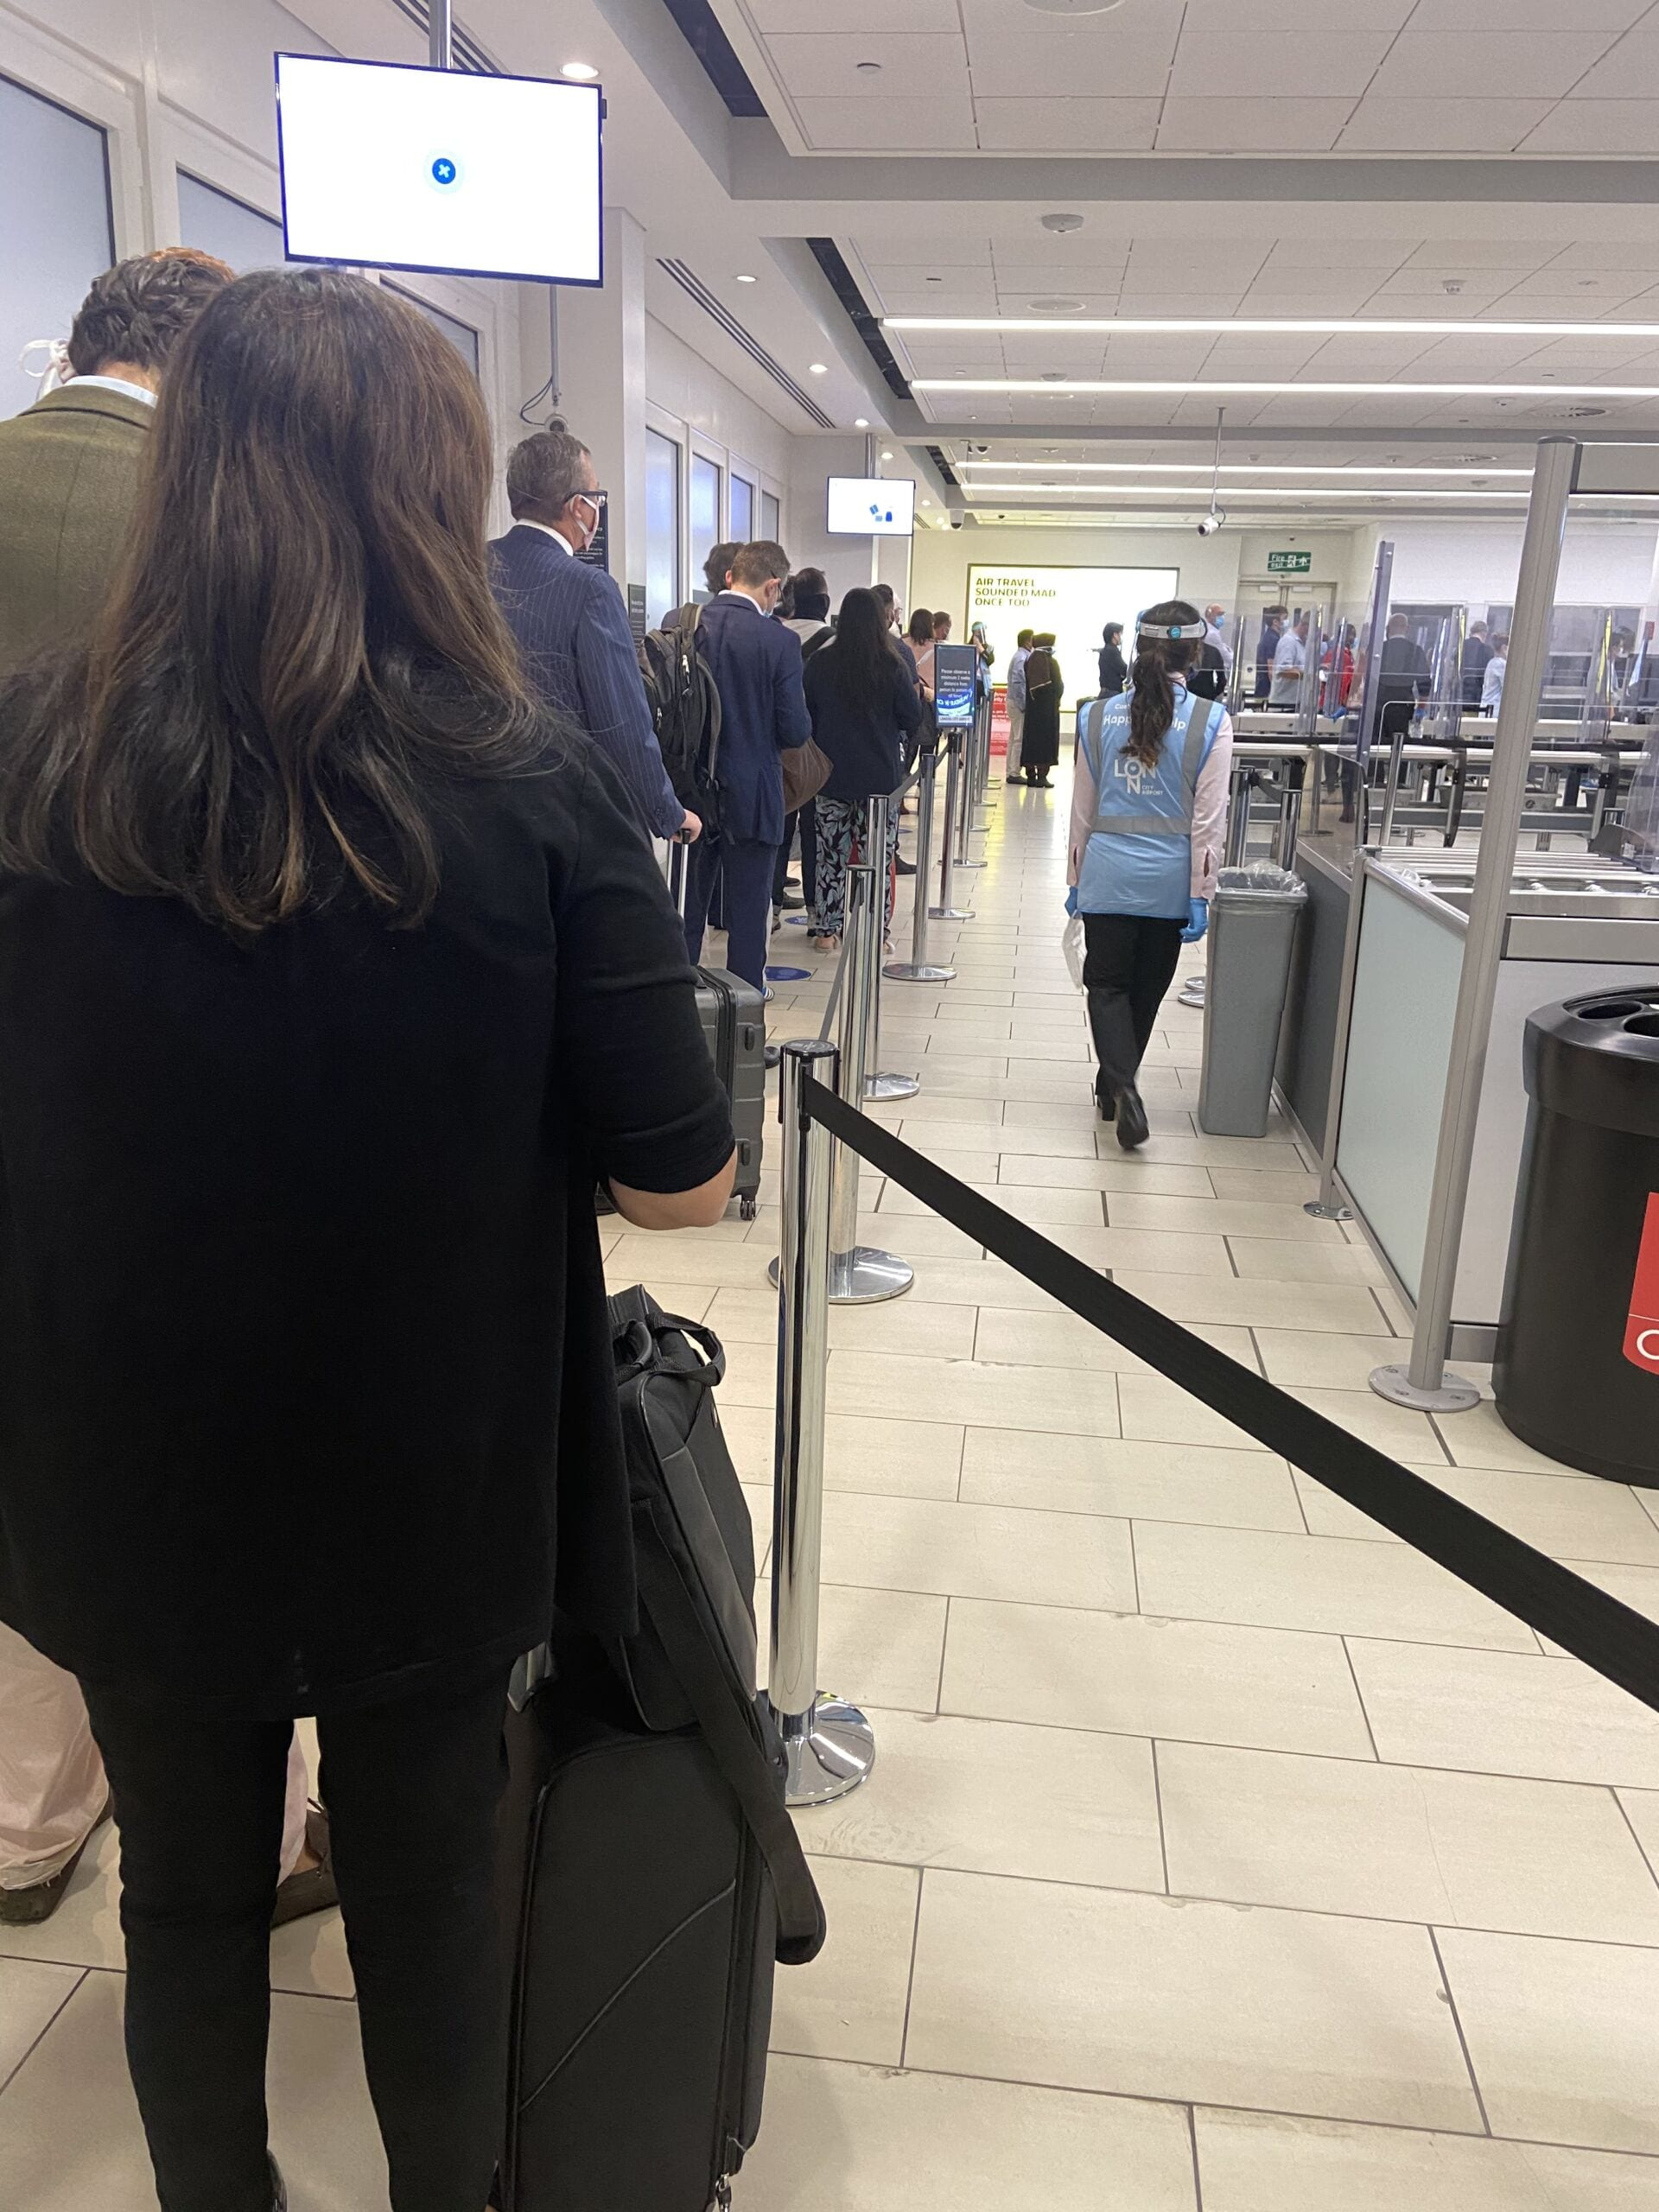 Airport Security Gate